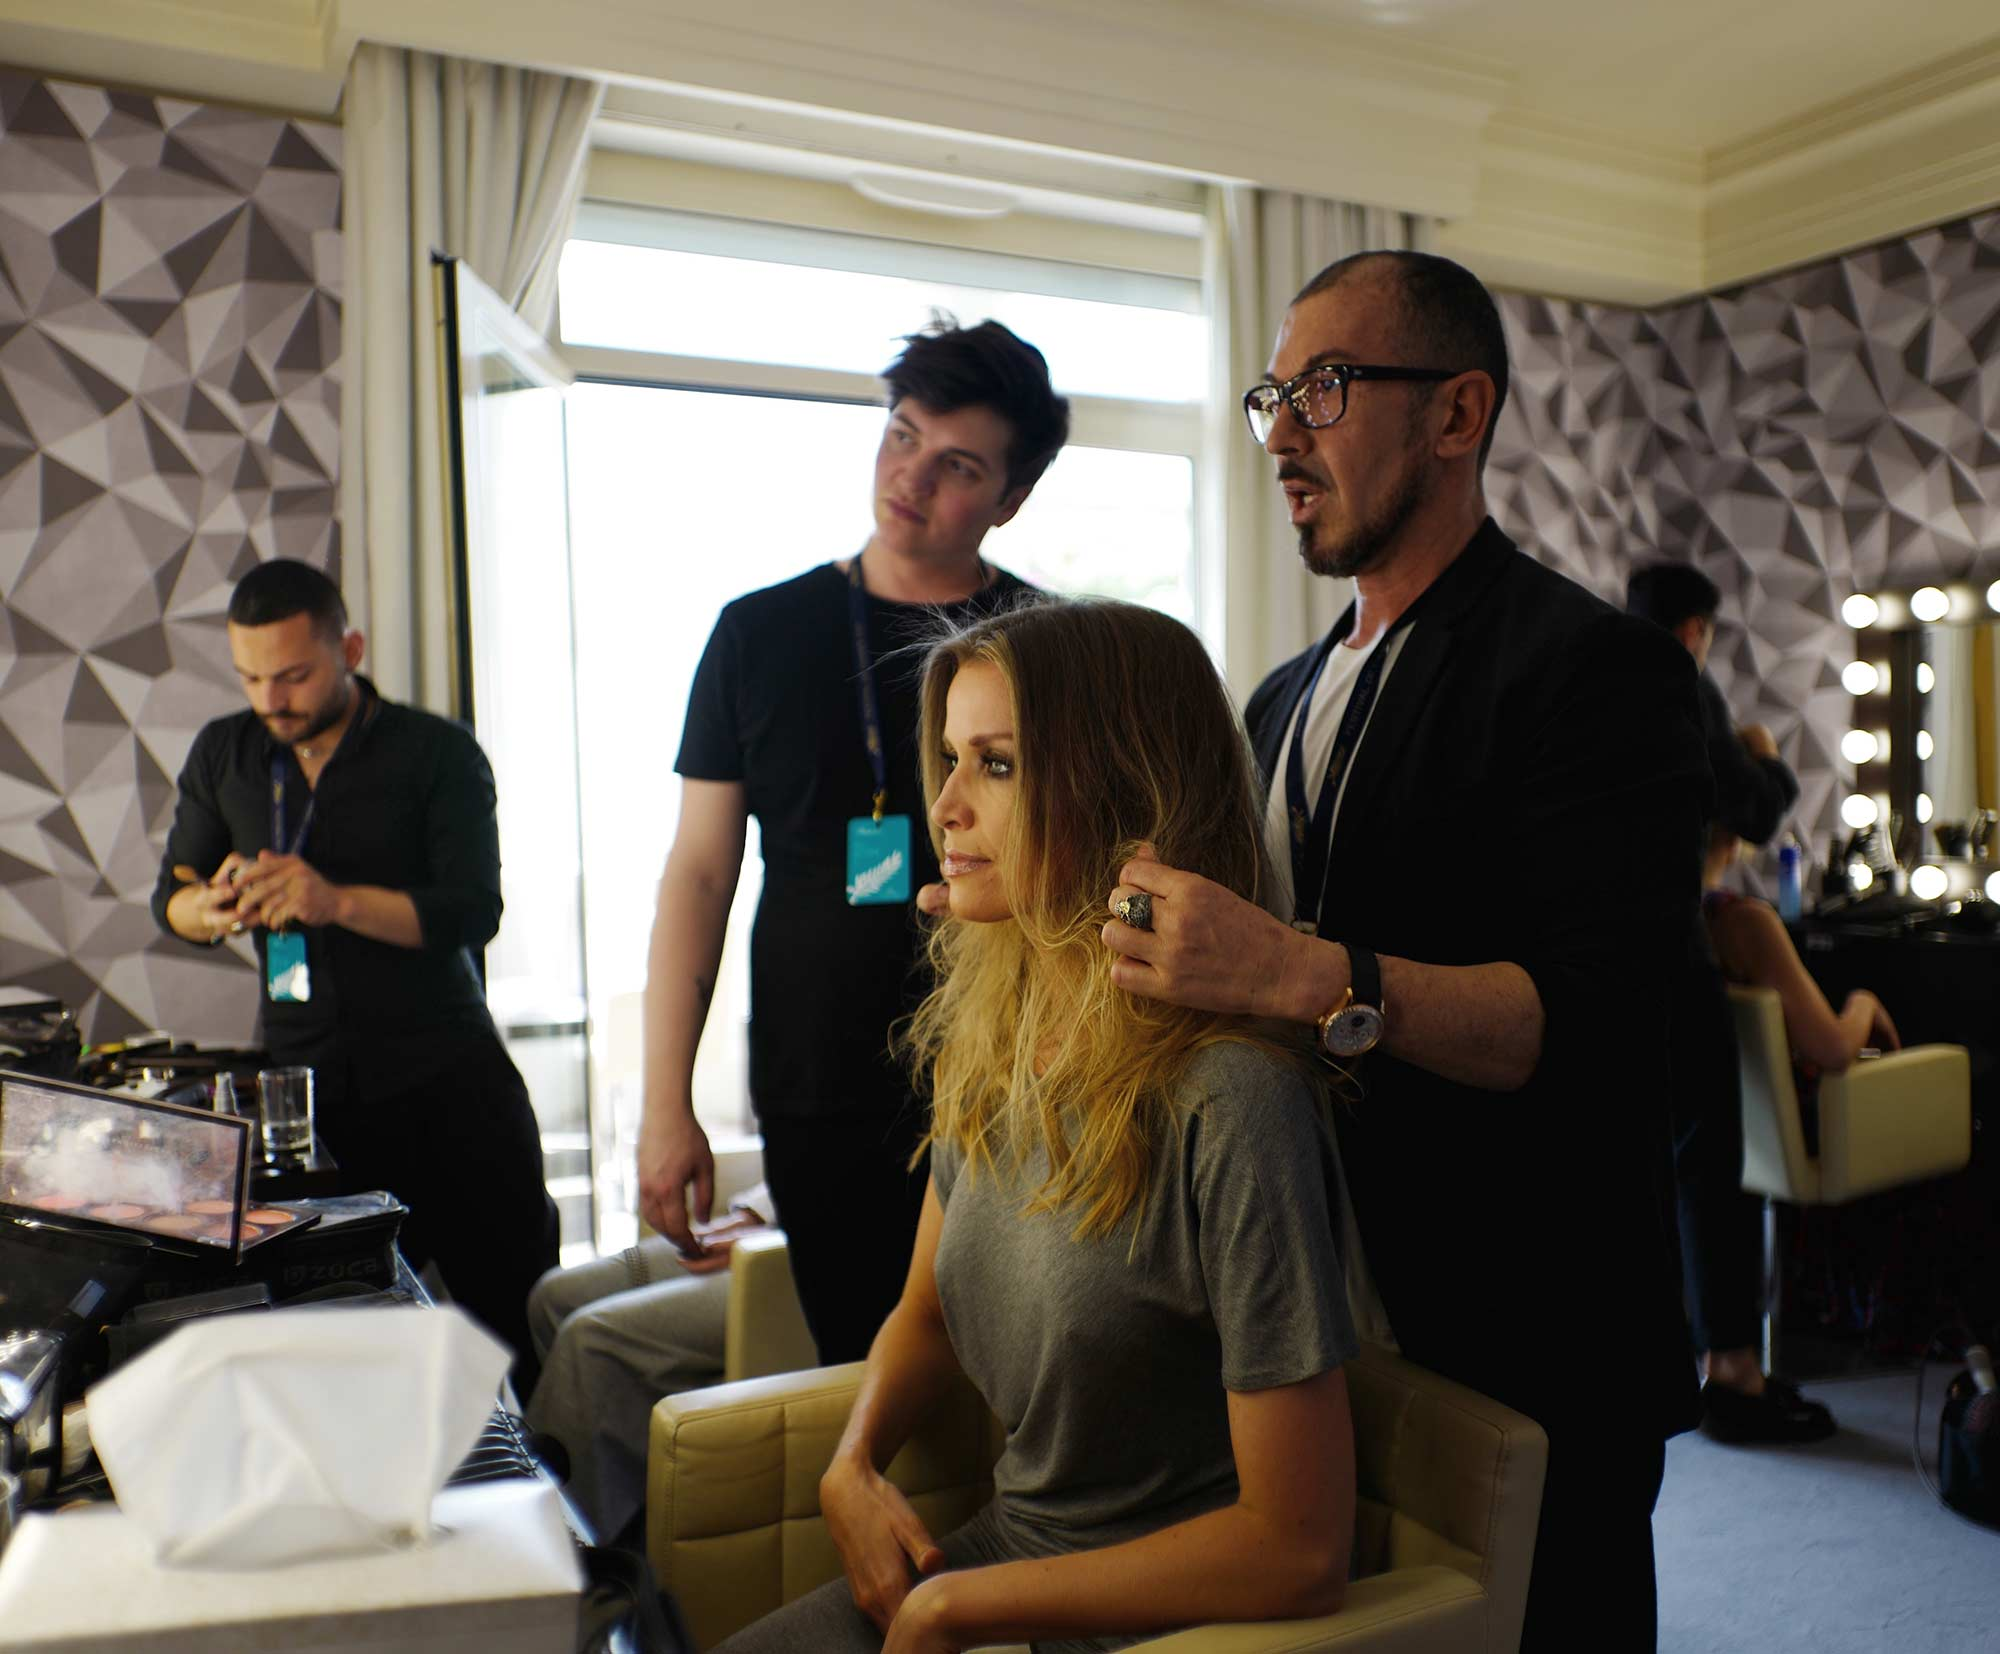 Cannes 2017 - Nicole Kimpel, hair Massimo Serini, make up Stanislao Iafulli